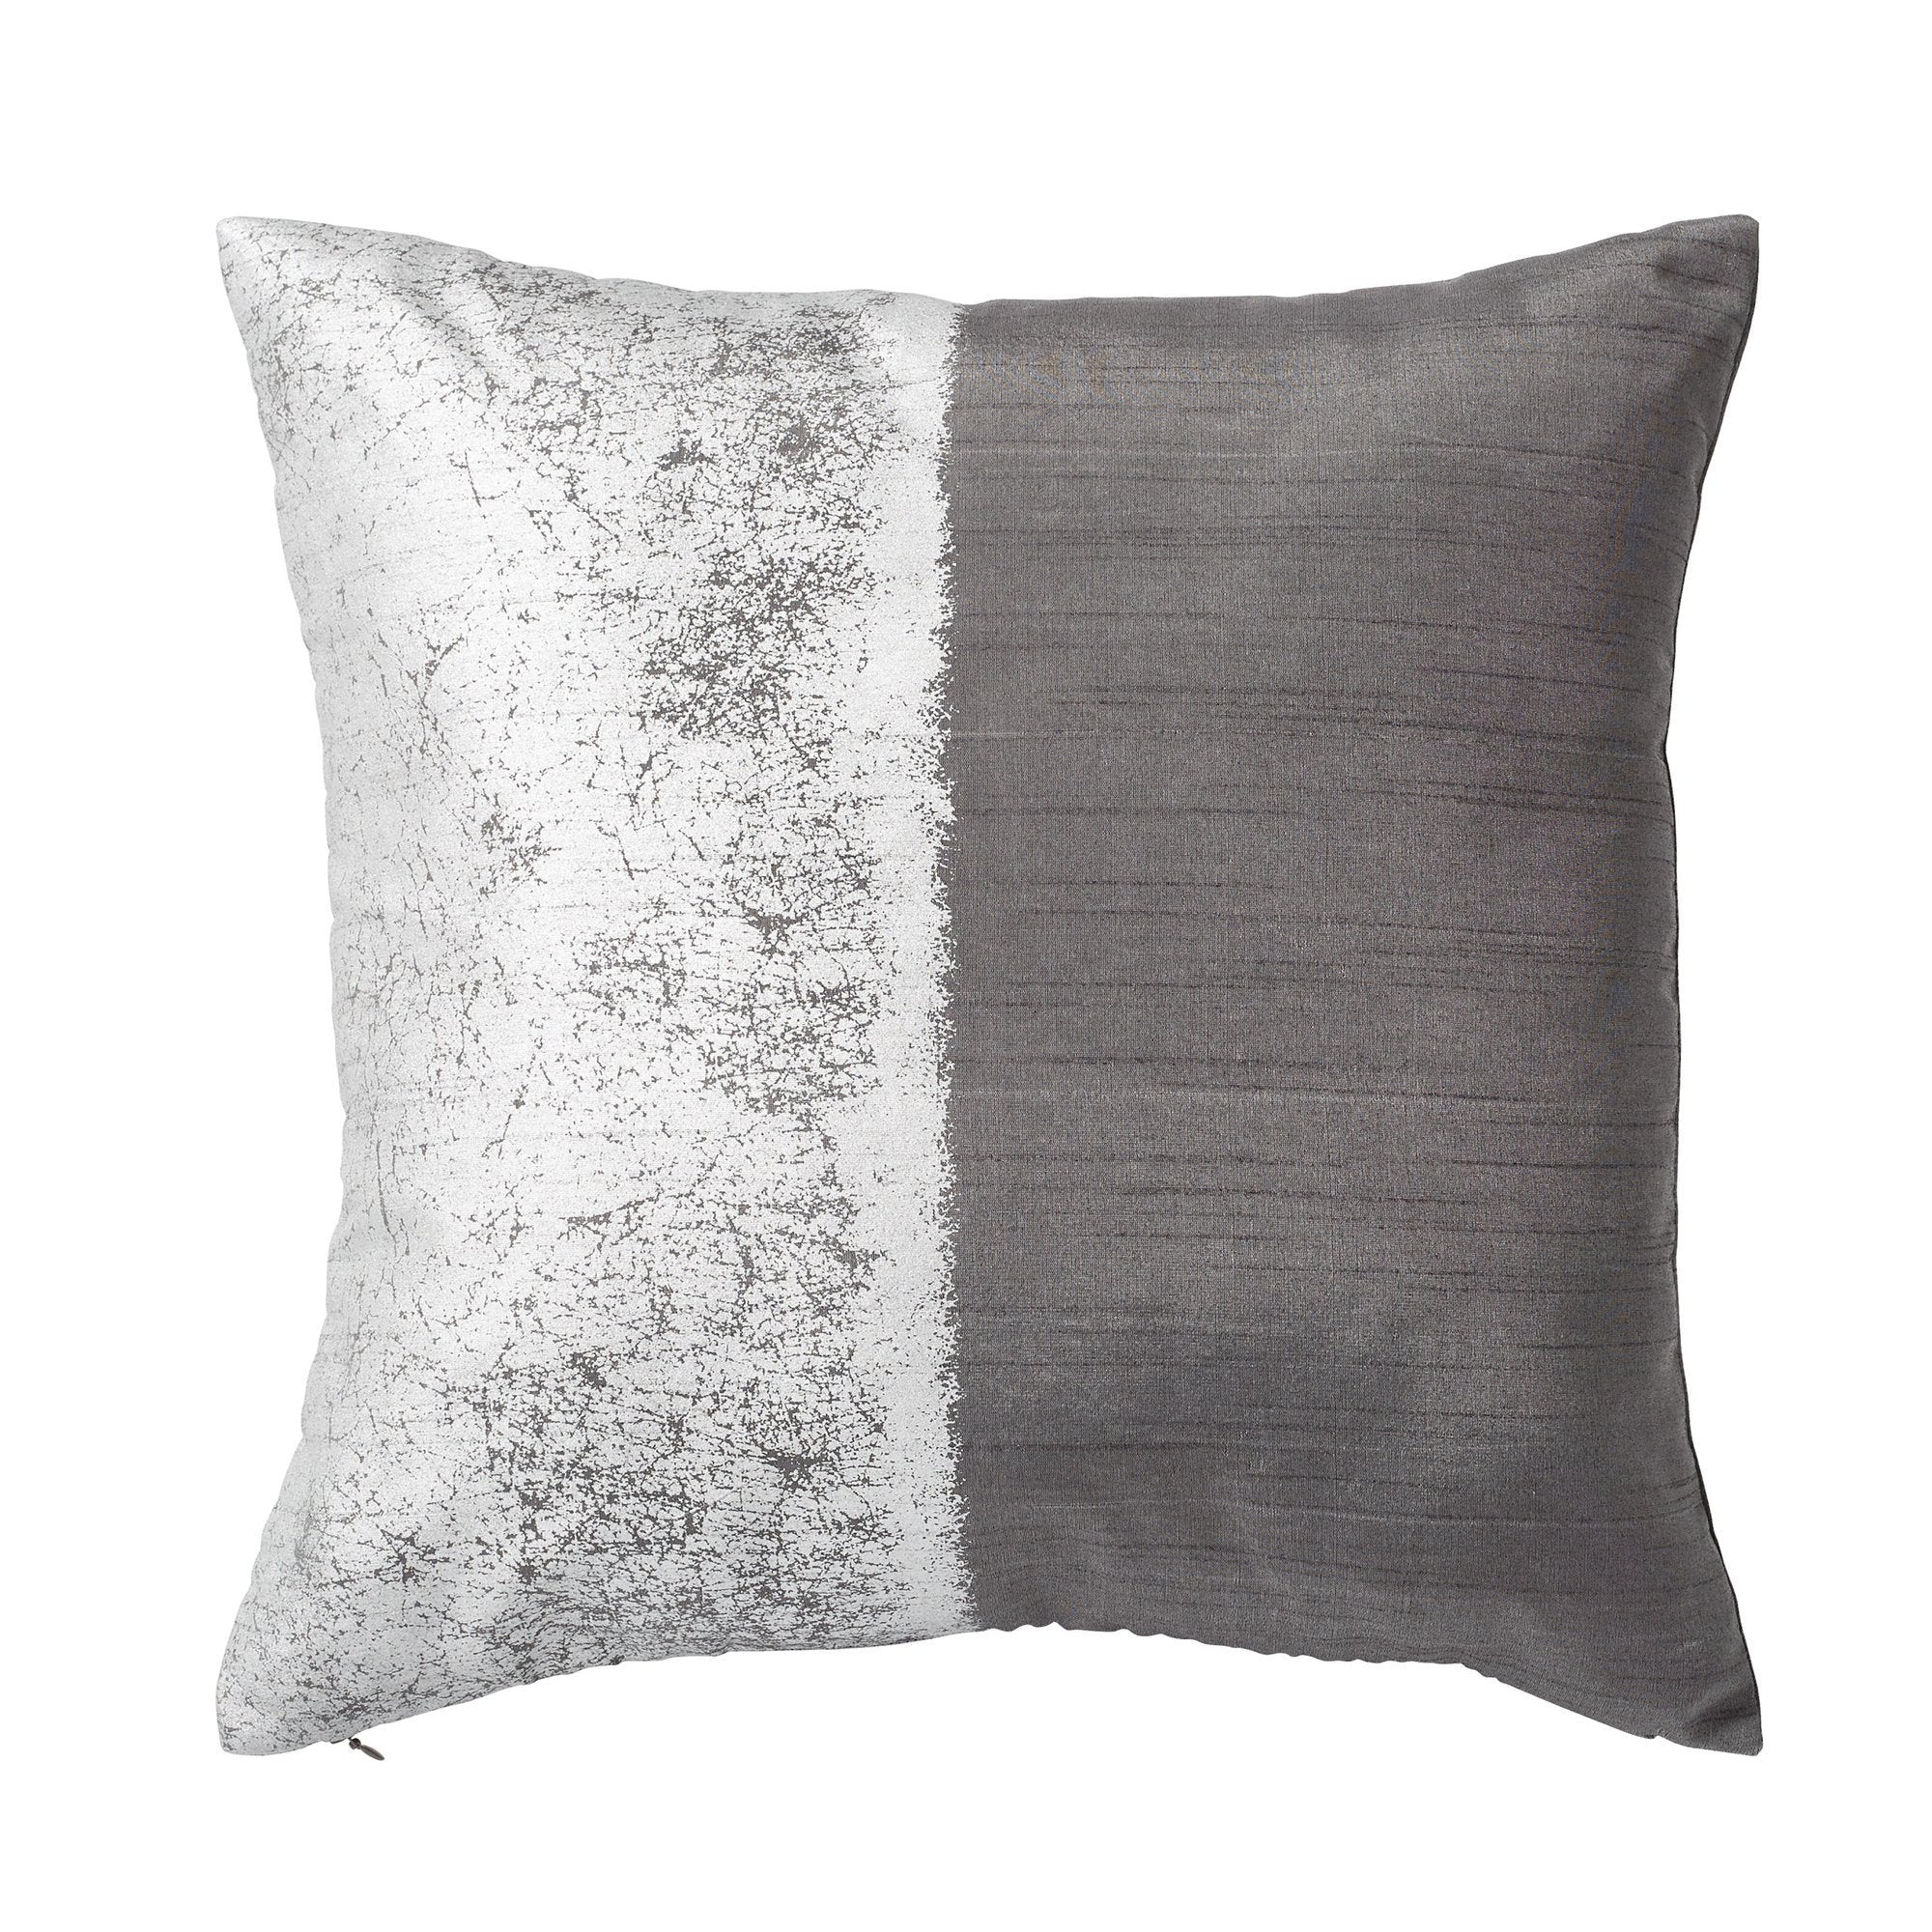 Metallic Texture Decorative Pillow - Charcoal